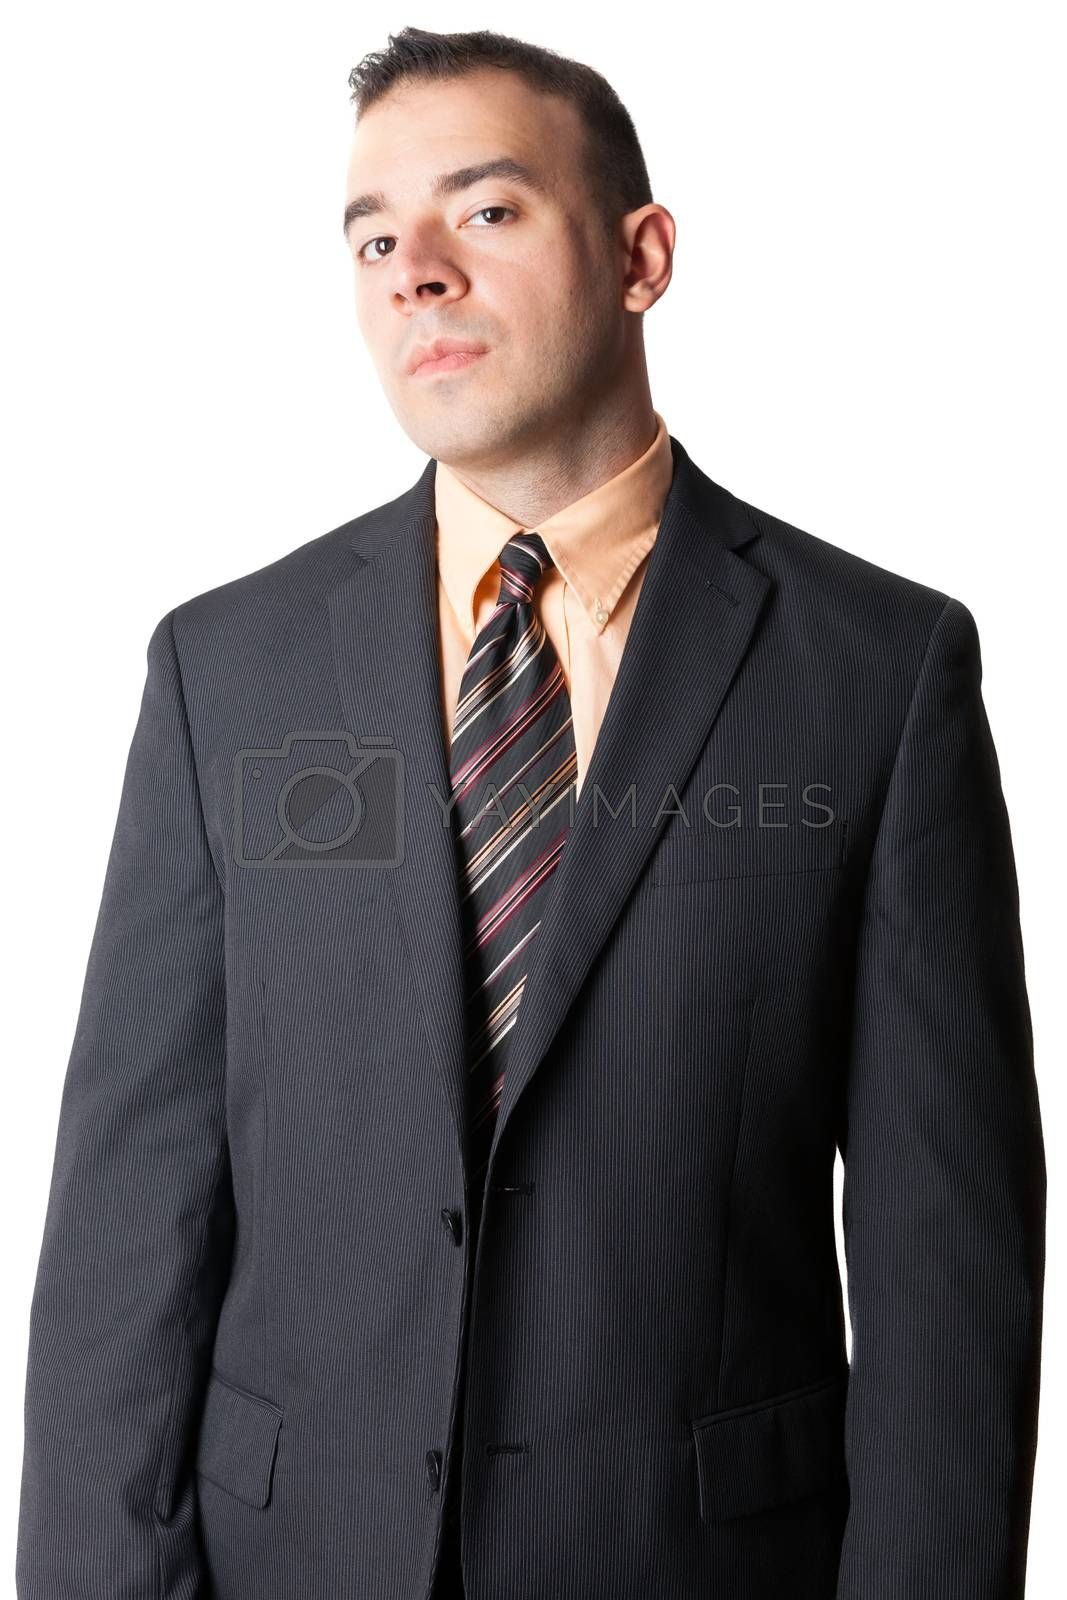 Serious business man in a black suit isolated over a white background.